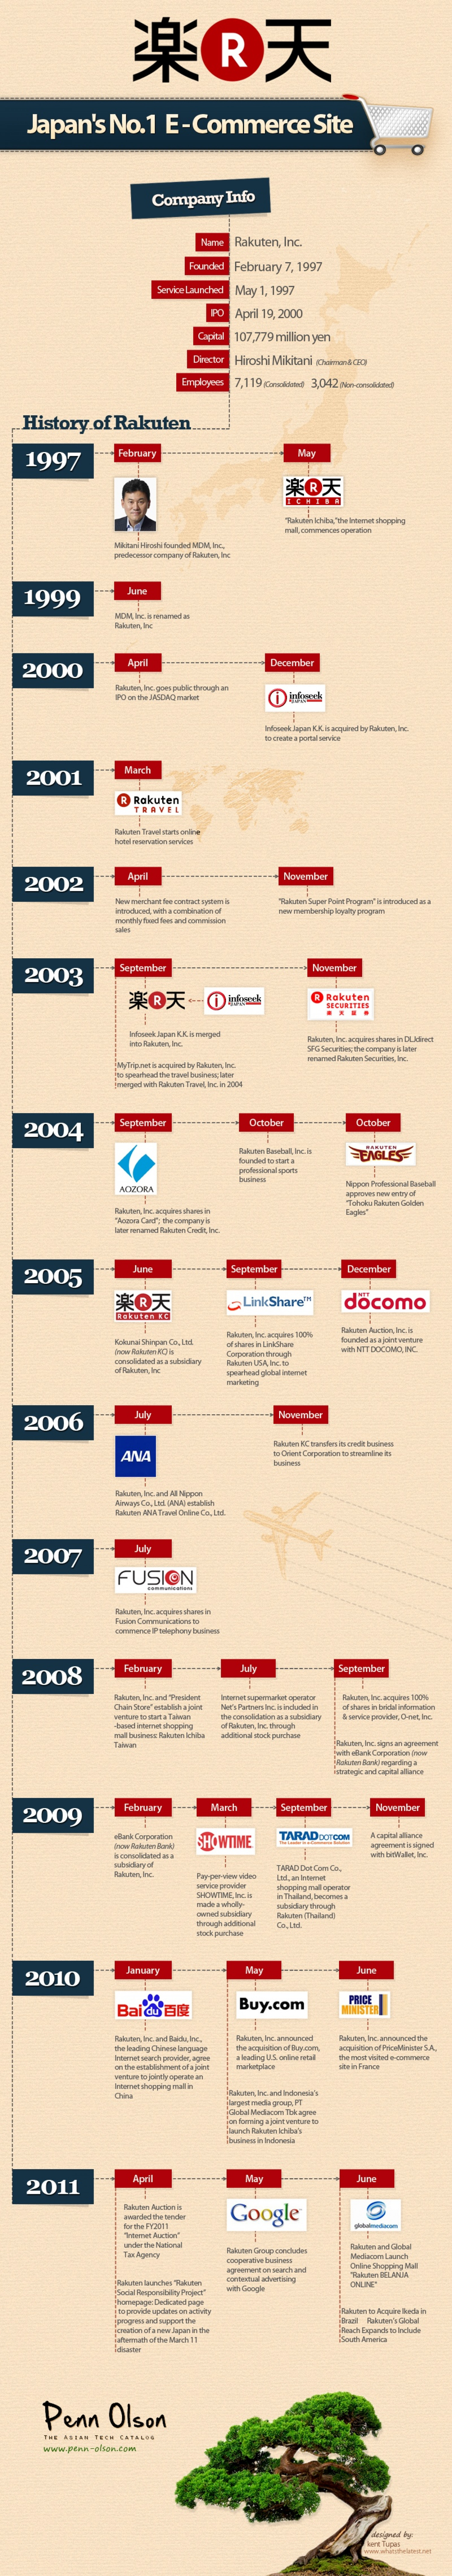 Rakuten Plans to Sell Solar Panels for Home Use Infographic